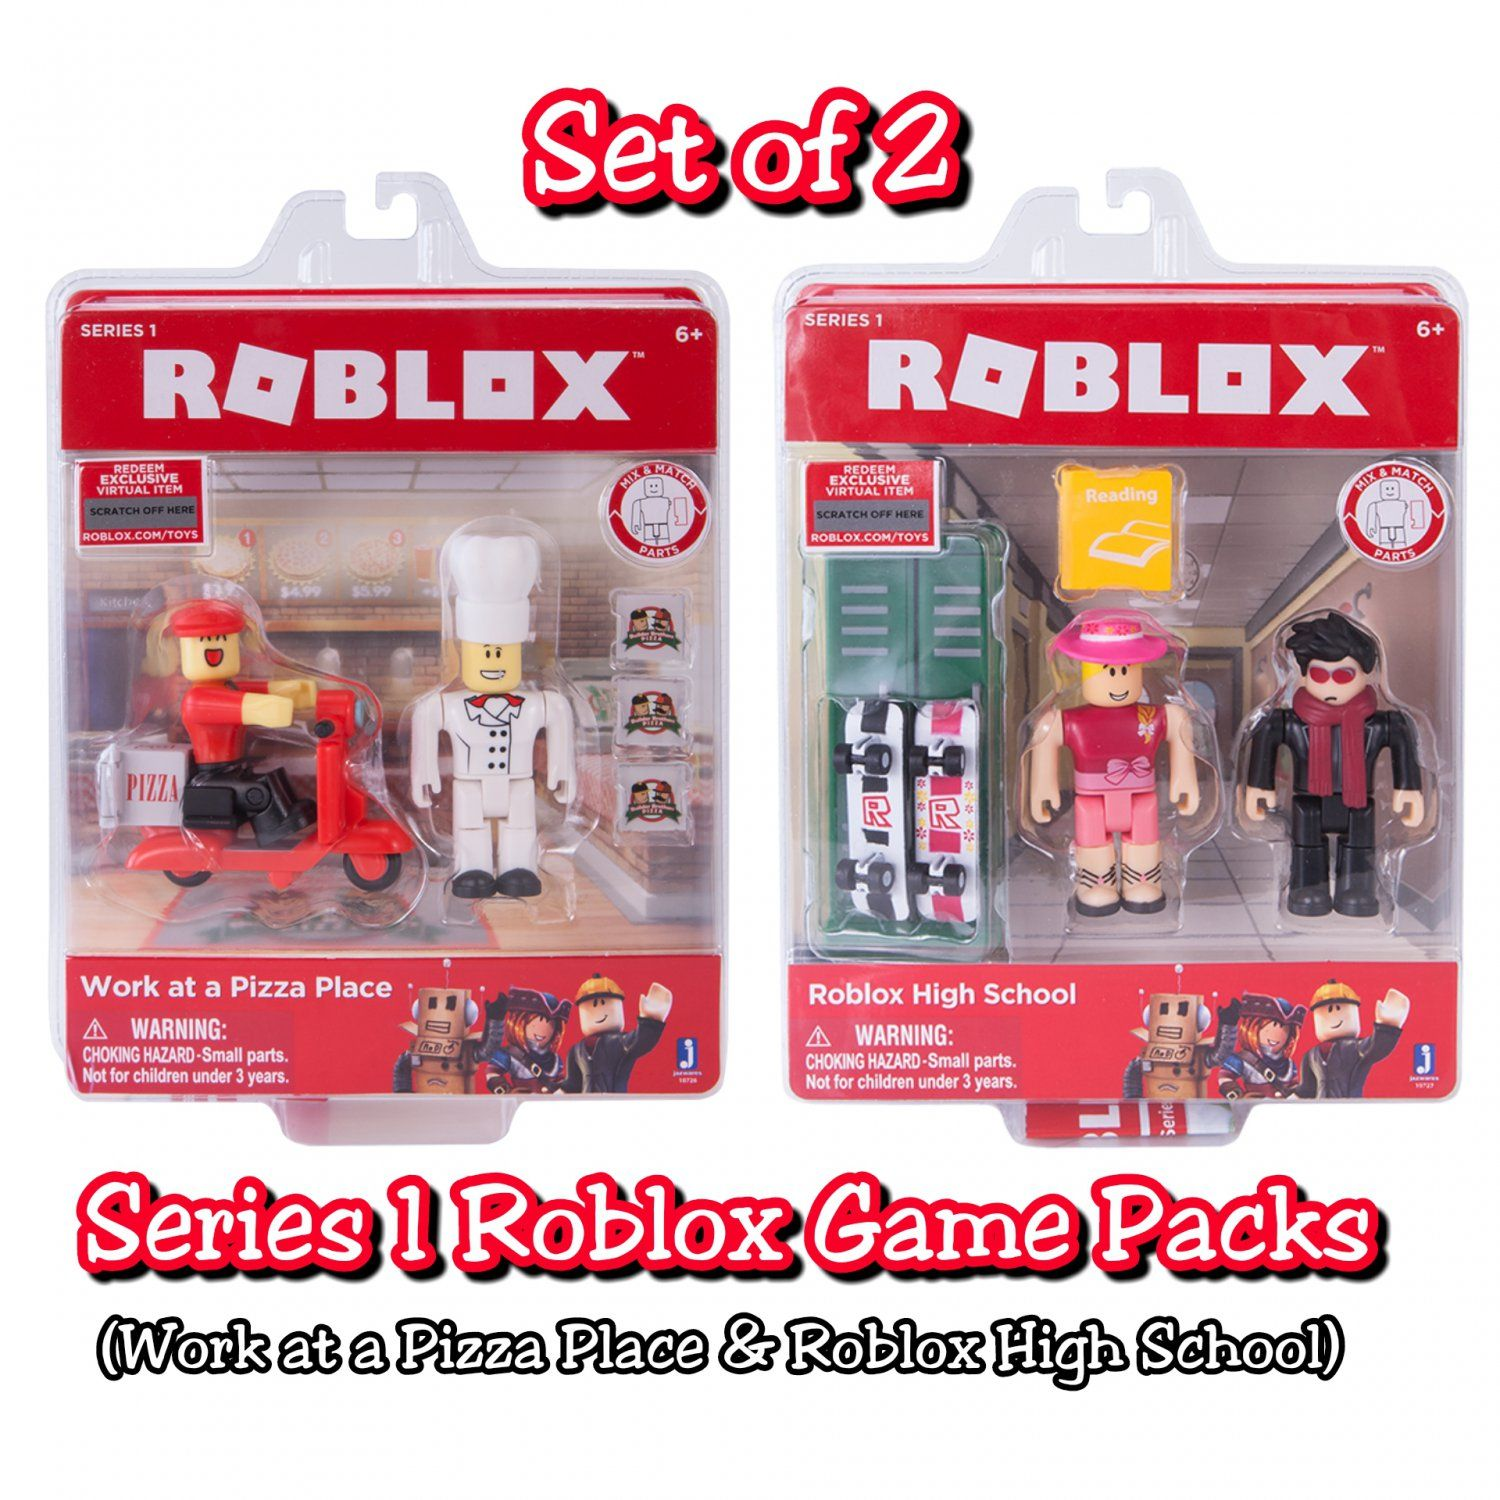 Roblox Work at a Pizza Place Game Pack